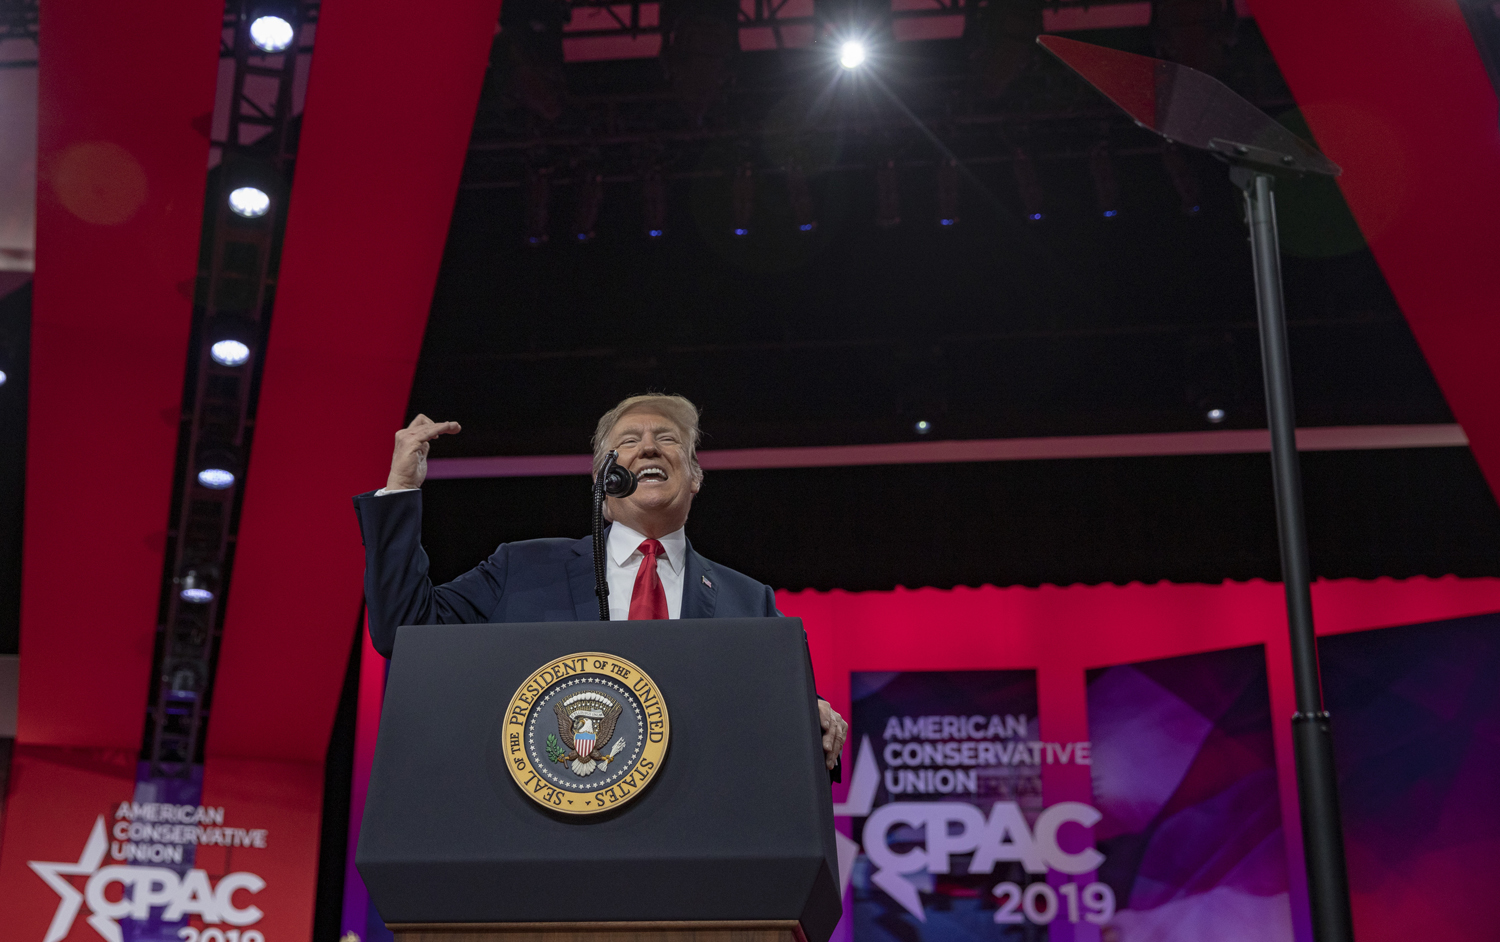 U.S. President Donald Trump speaks during Conservative Political Action Conference 2019 on March 2 in National Harbor, Maryland. The American Conservative Union hosts the annual CPAC to discuss conservative agendas.